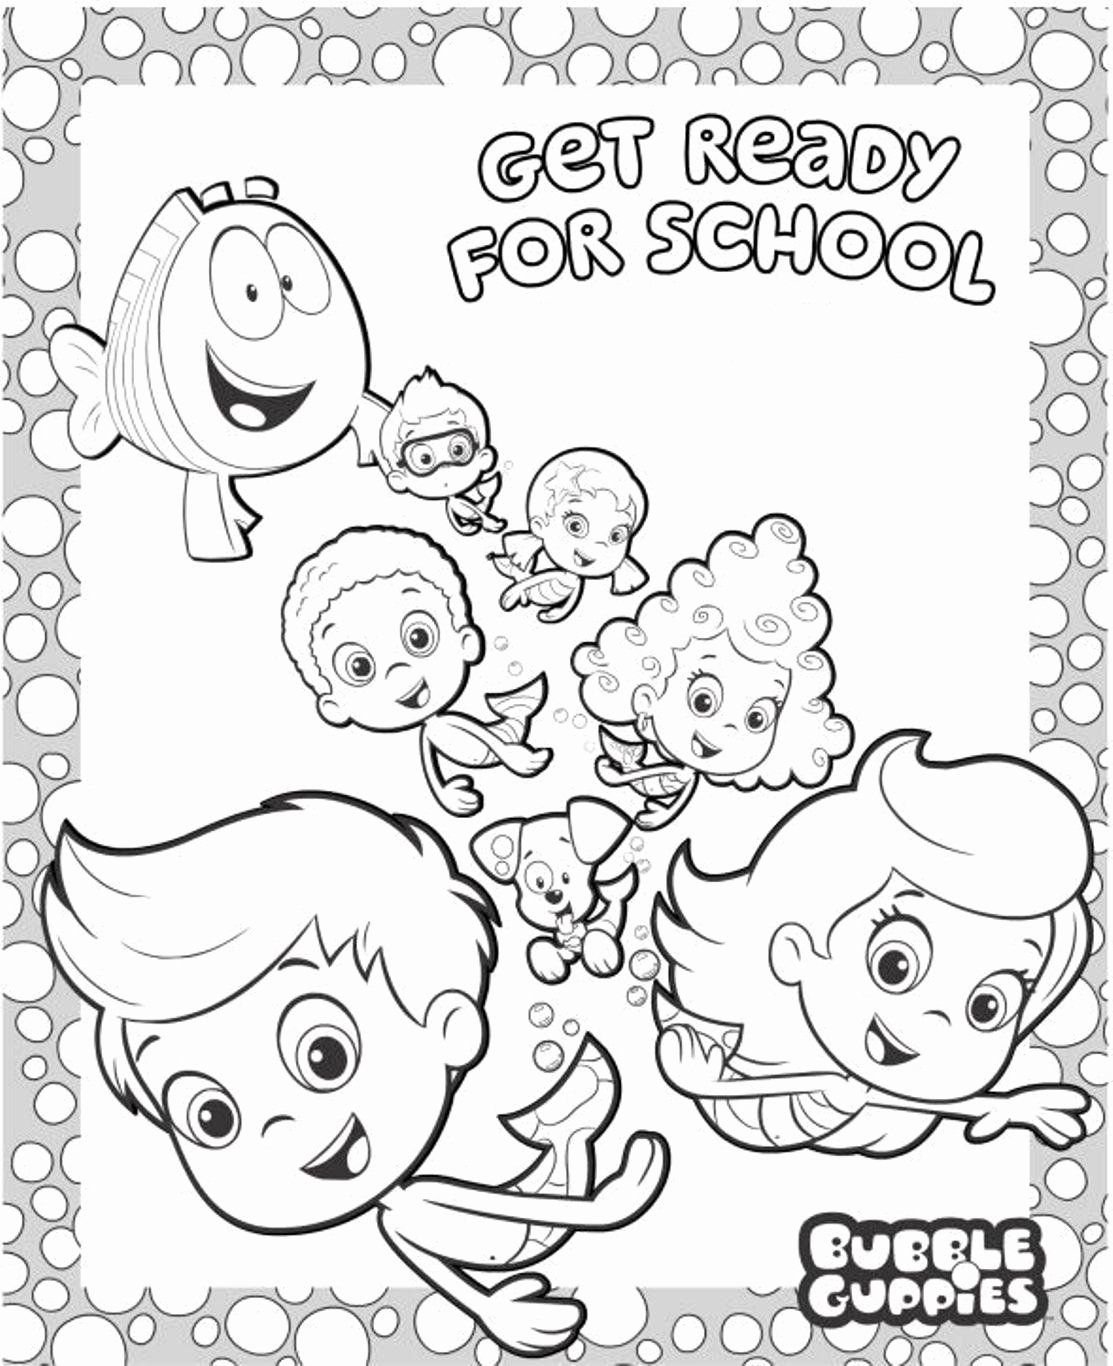 24 Bubble Guppies Coloring Page In